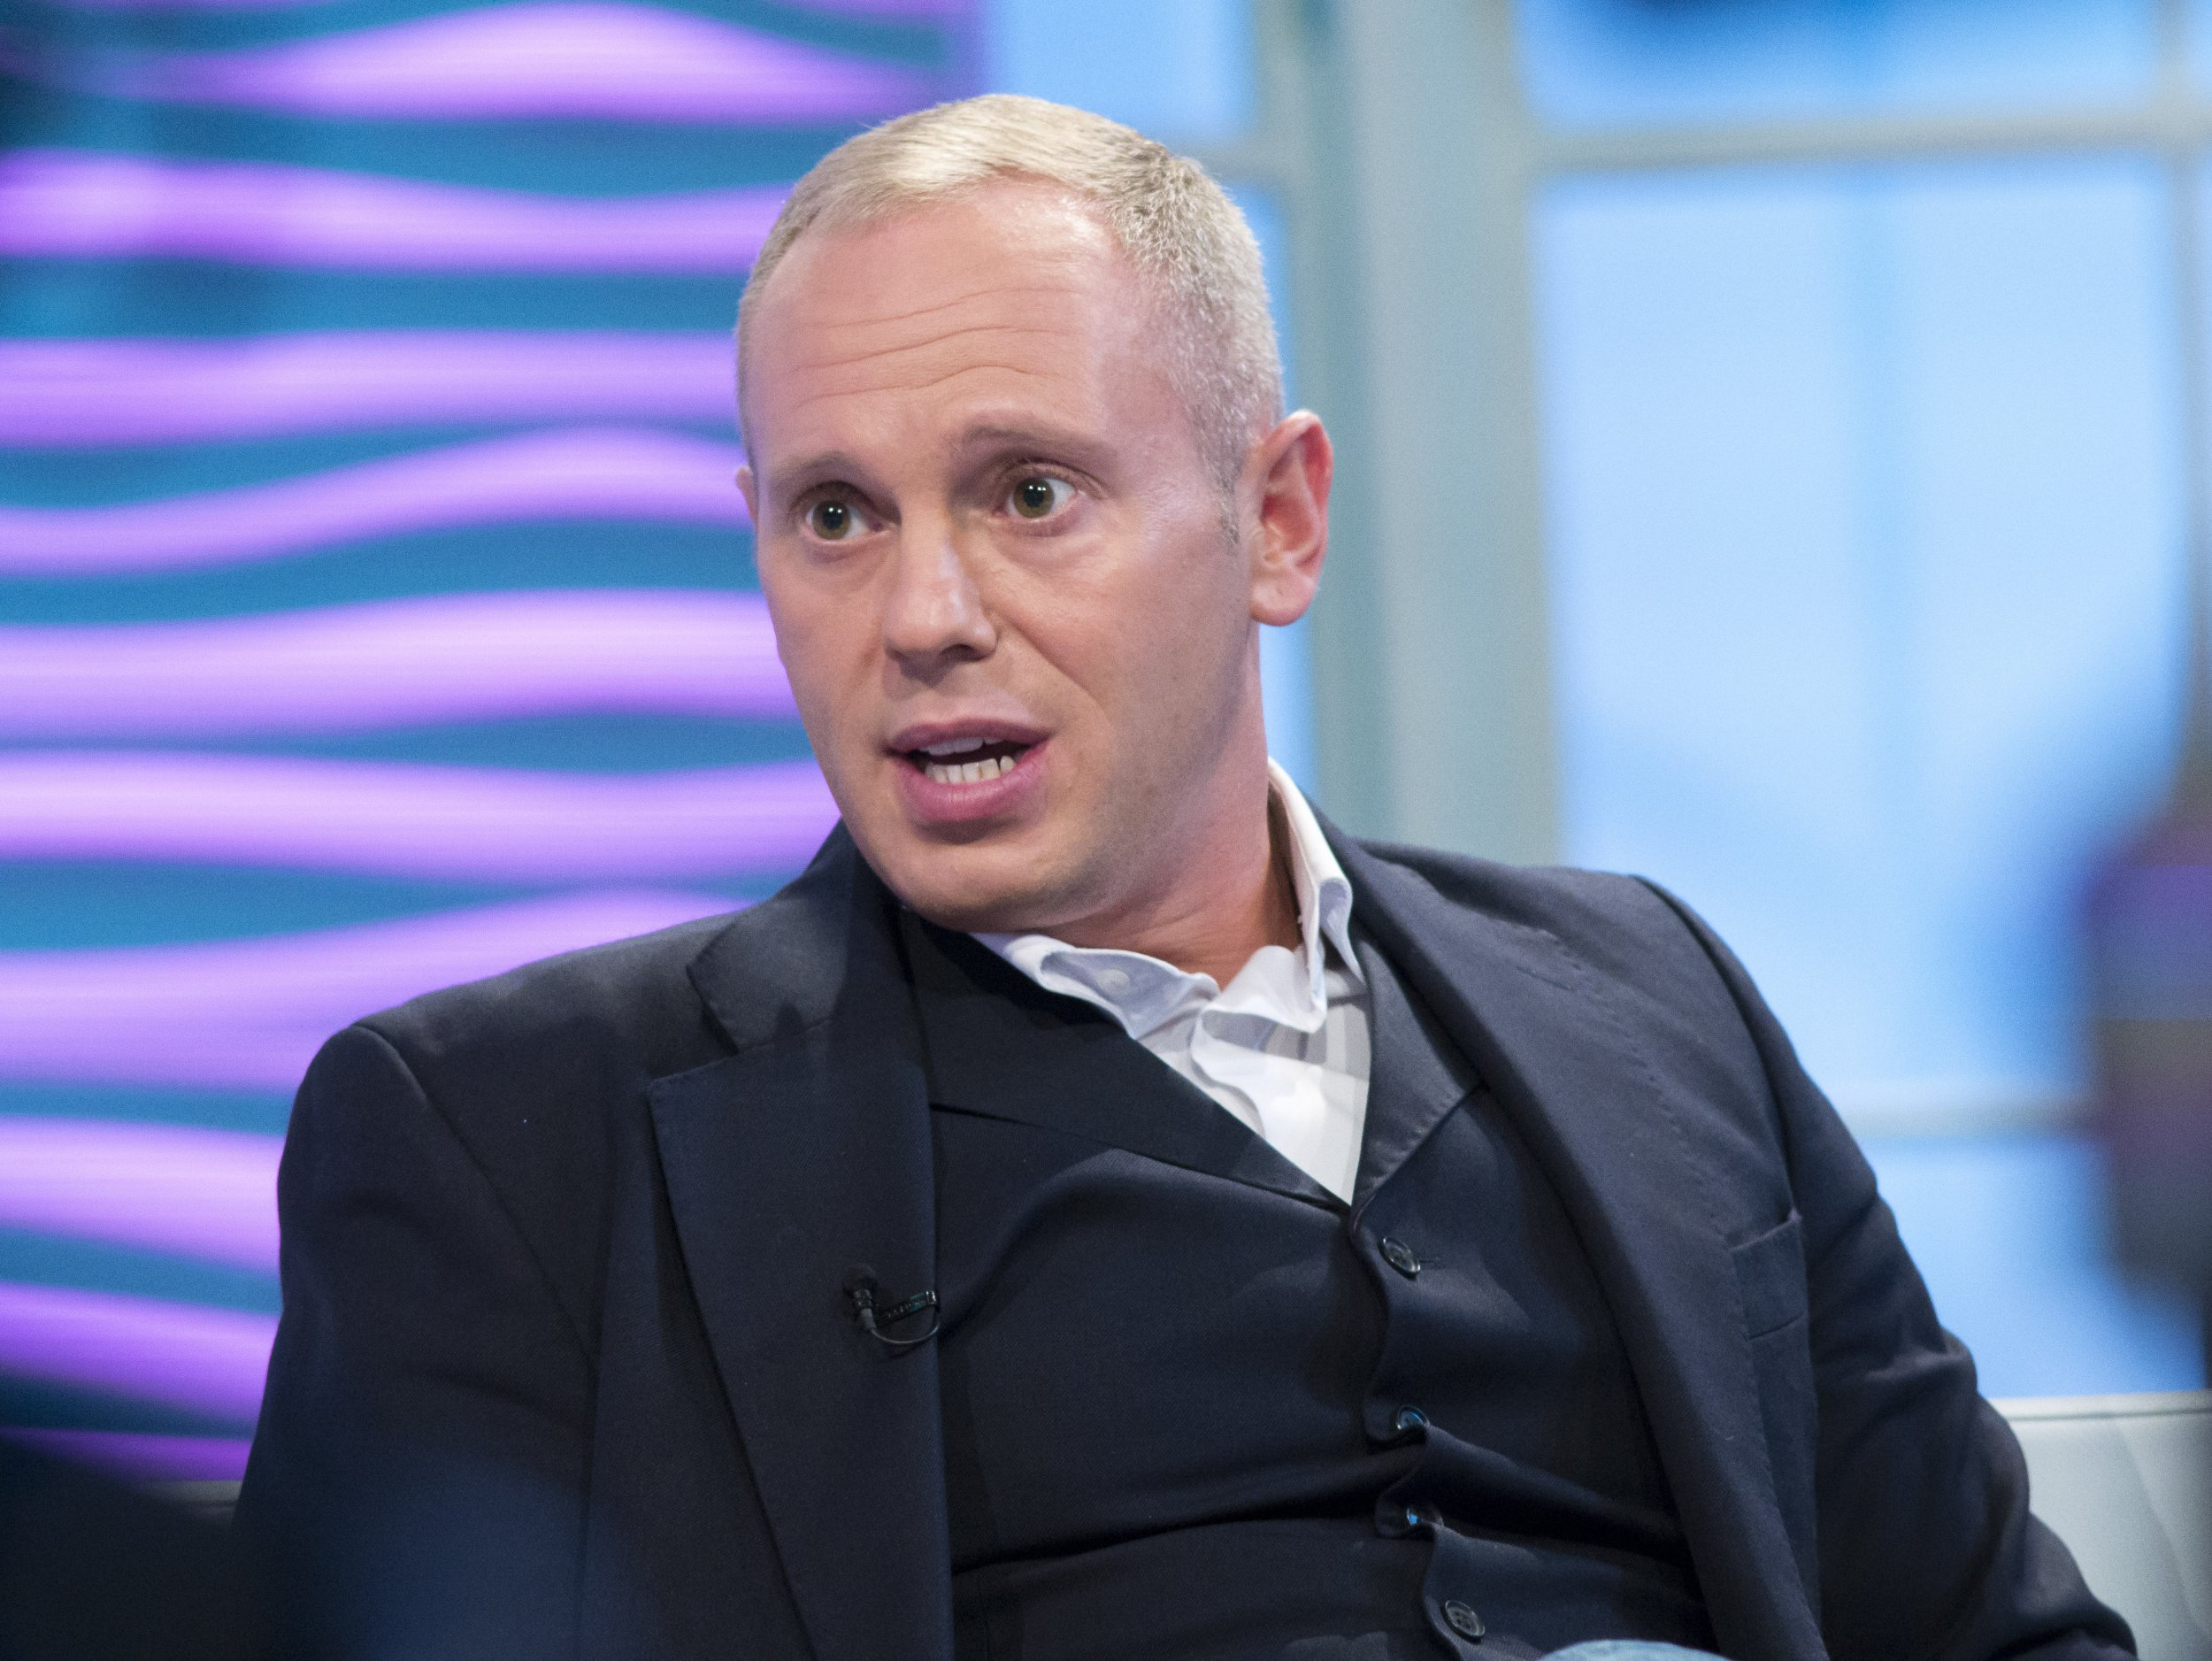 Is Judge Rinder a real judge and how does he know Benedict Cumberbatch?